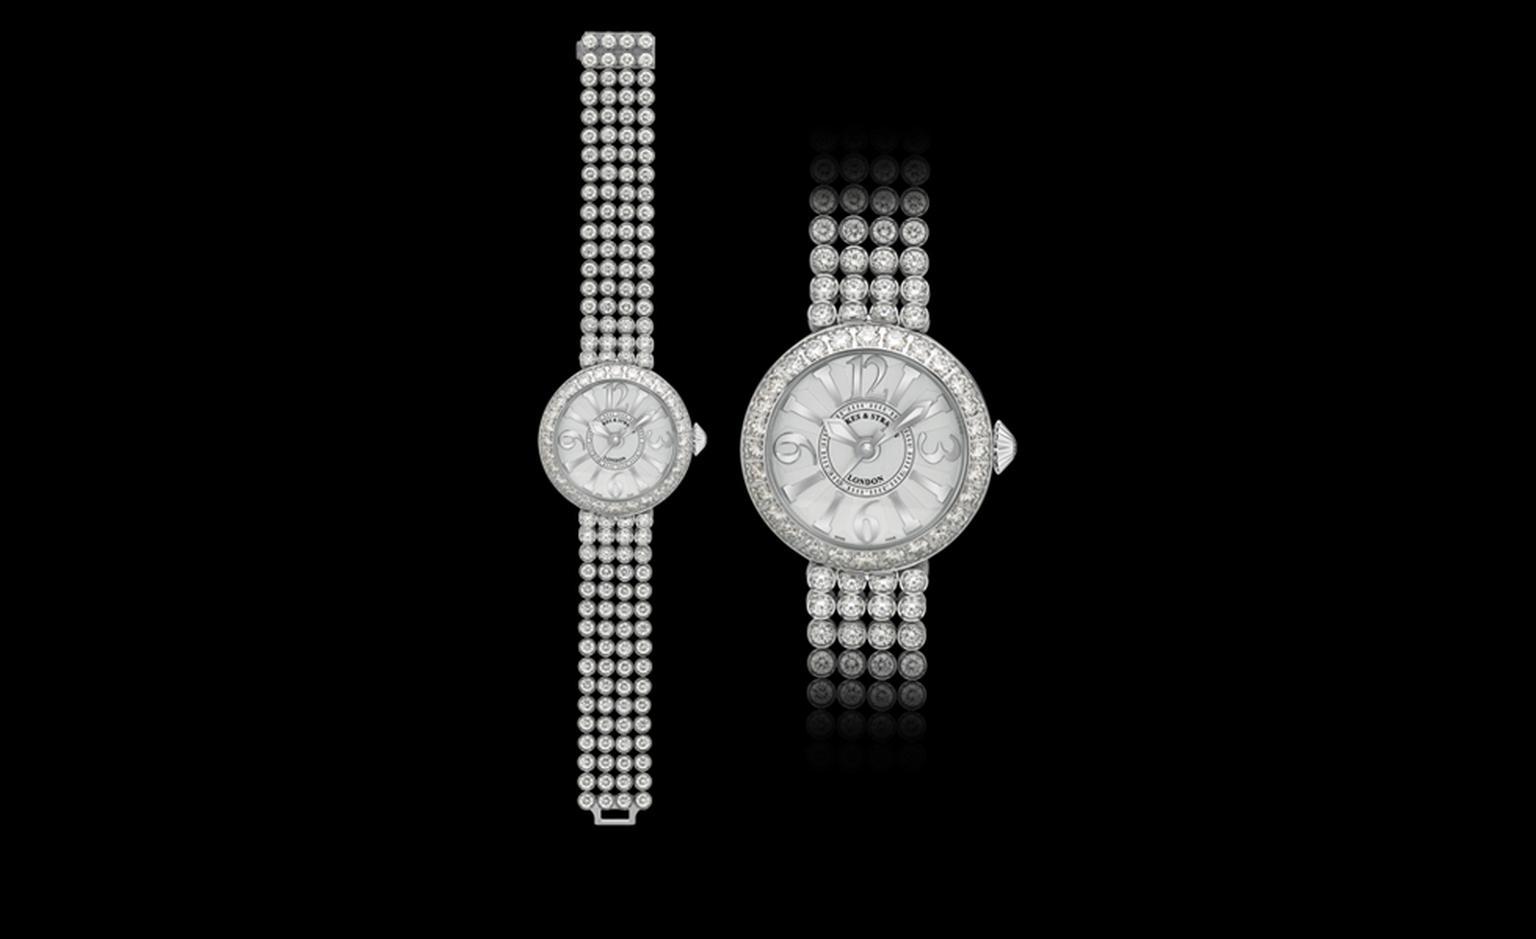 Backes & Strauss. The Piccadilly Princess Classic 37 from The Royal Collection. 107 ideal cut brilliant diamonds weighing, including a bracelet of ideal cut diamonds. Price from £154,290.00.